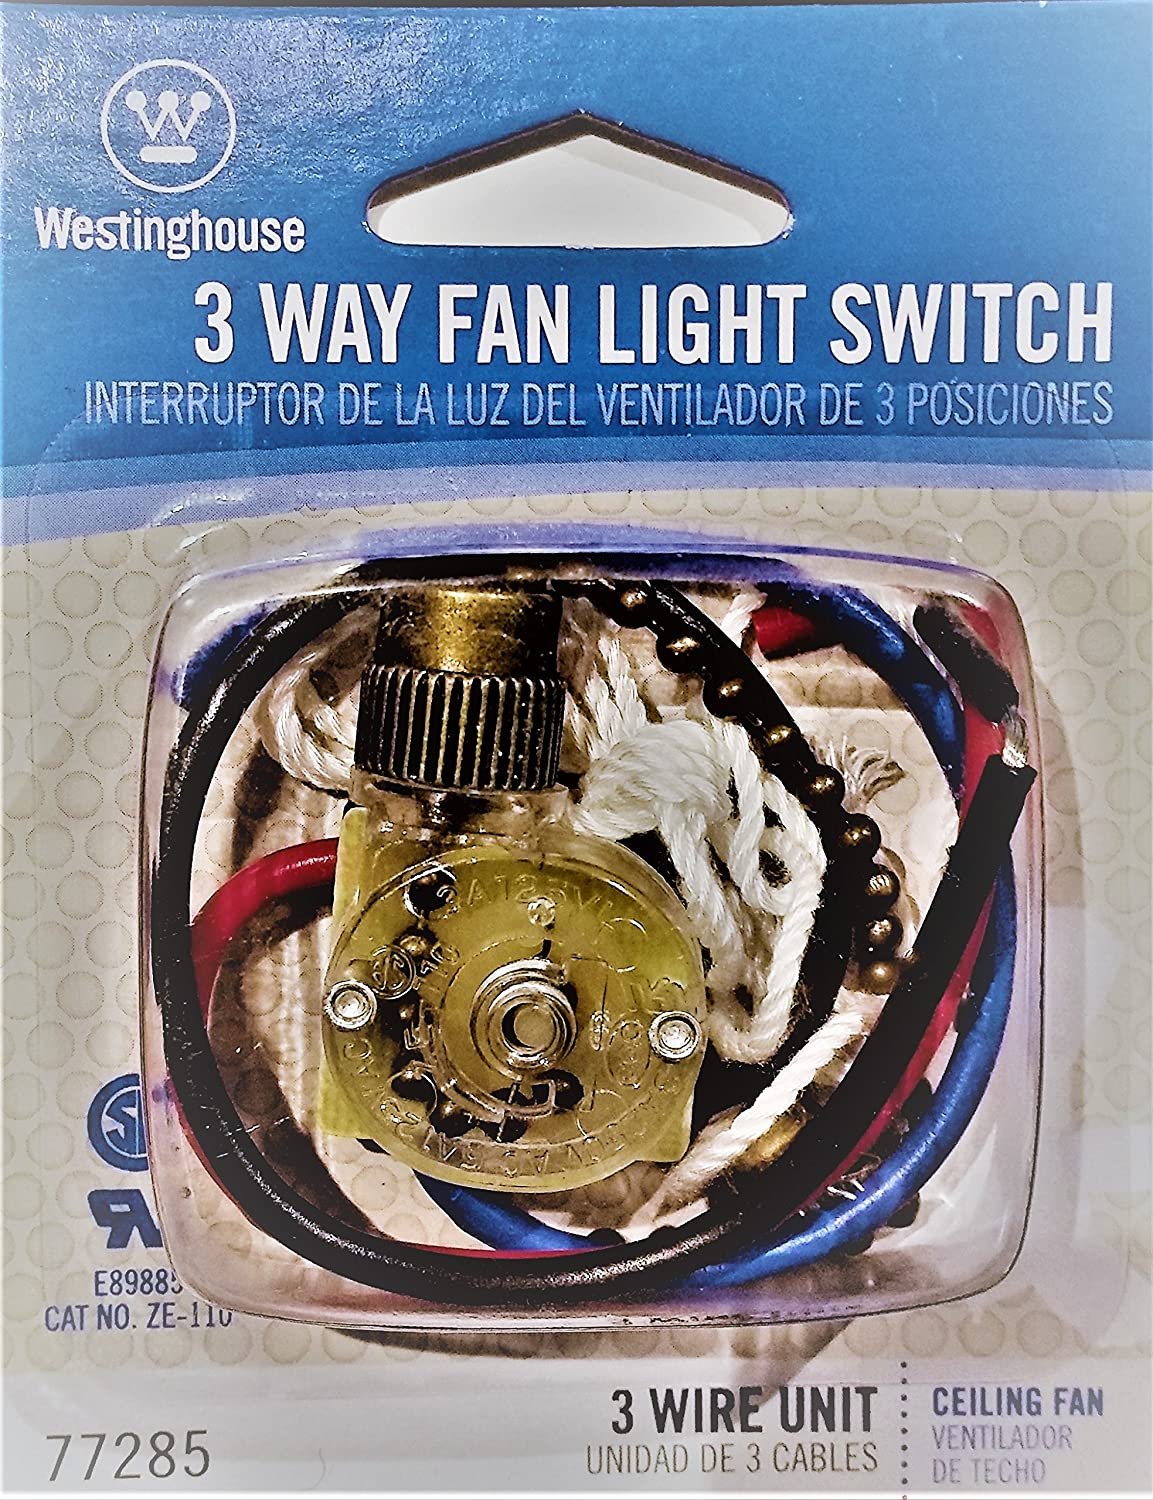 Westinghouse 3 Way Fan Light Switch Tools Products Wiring